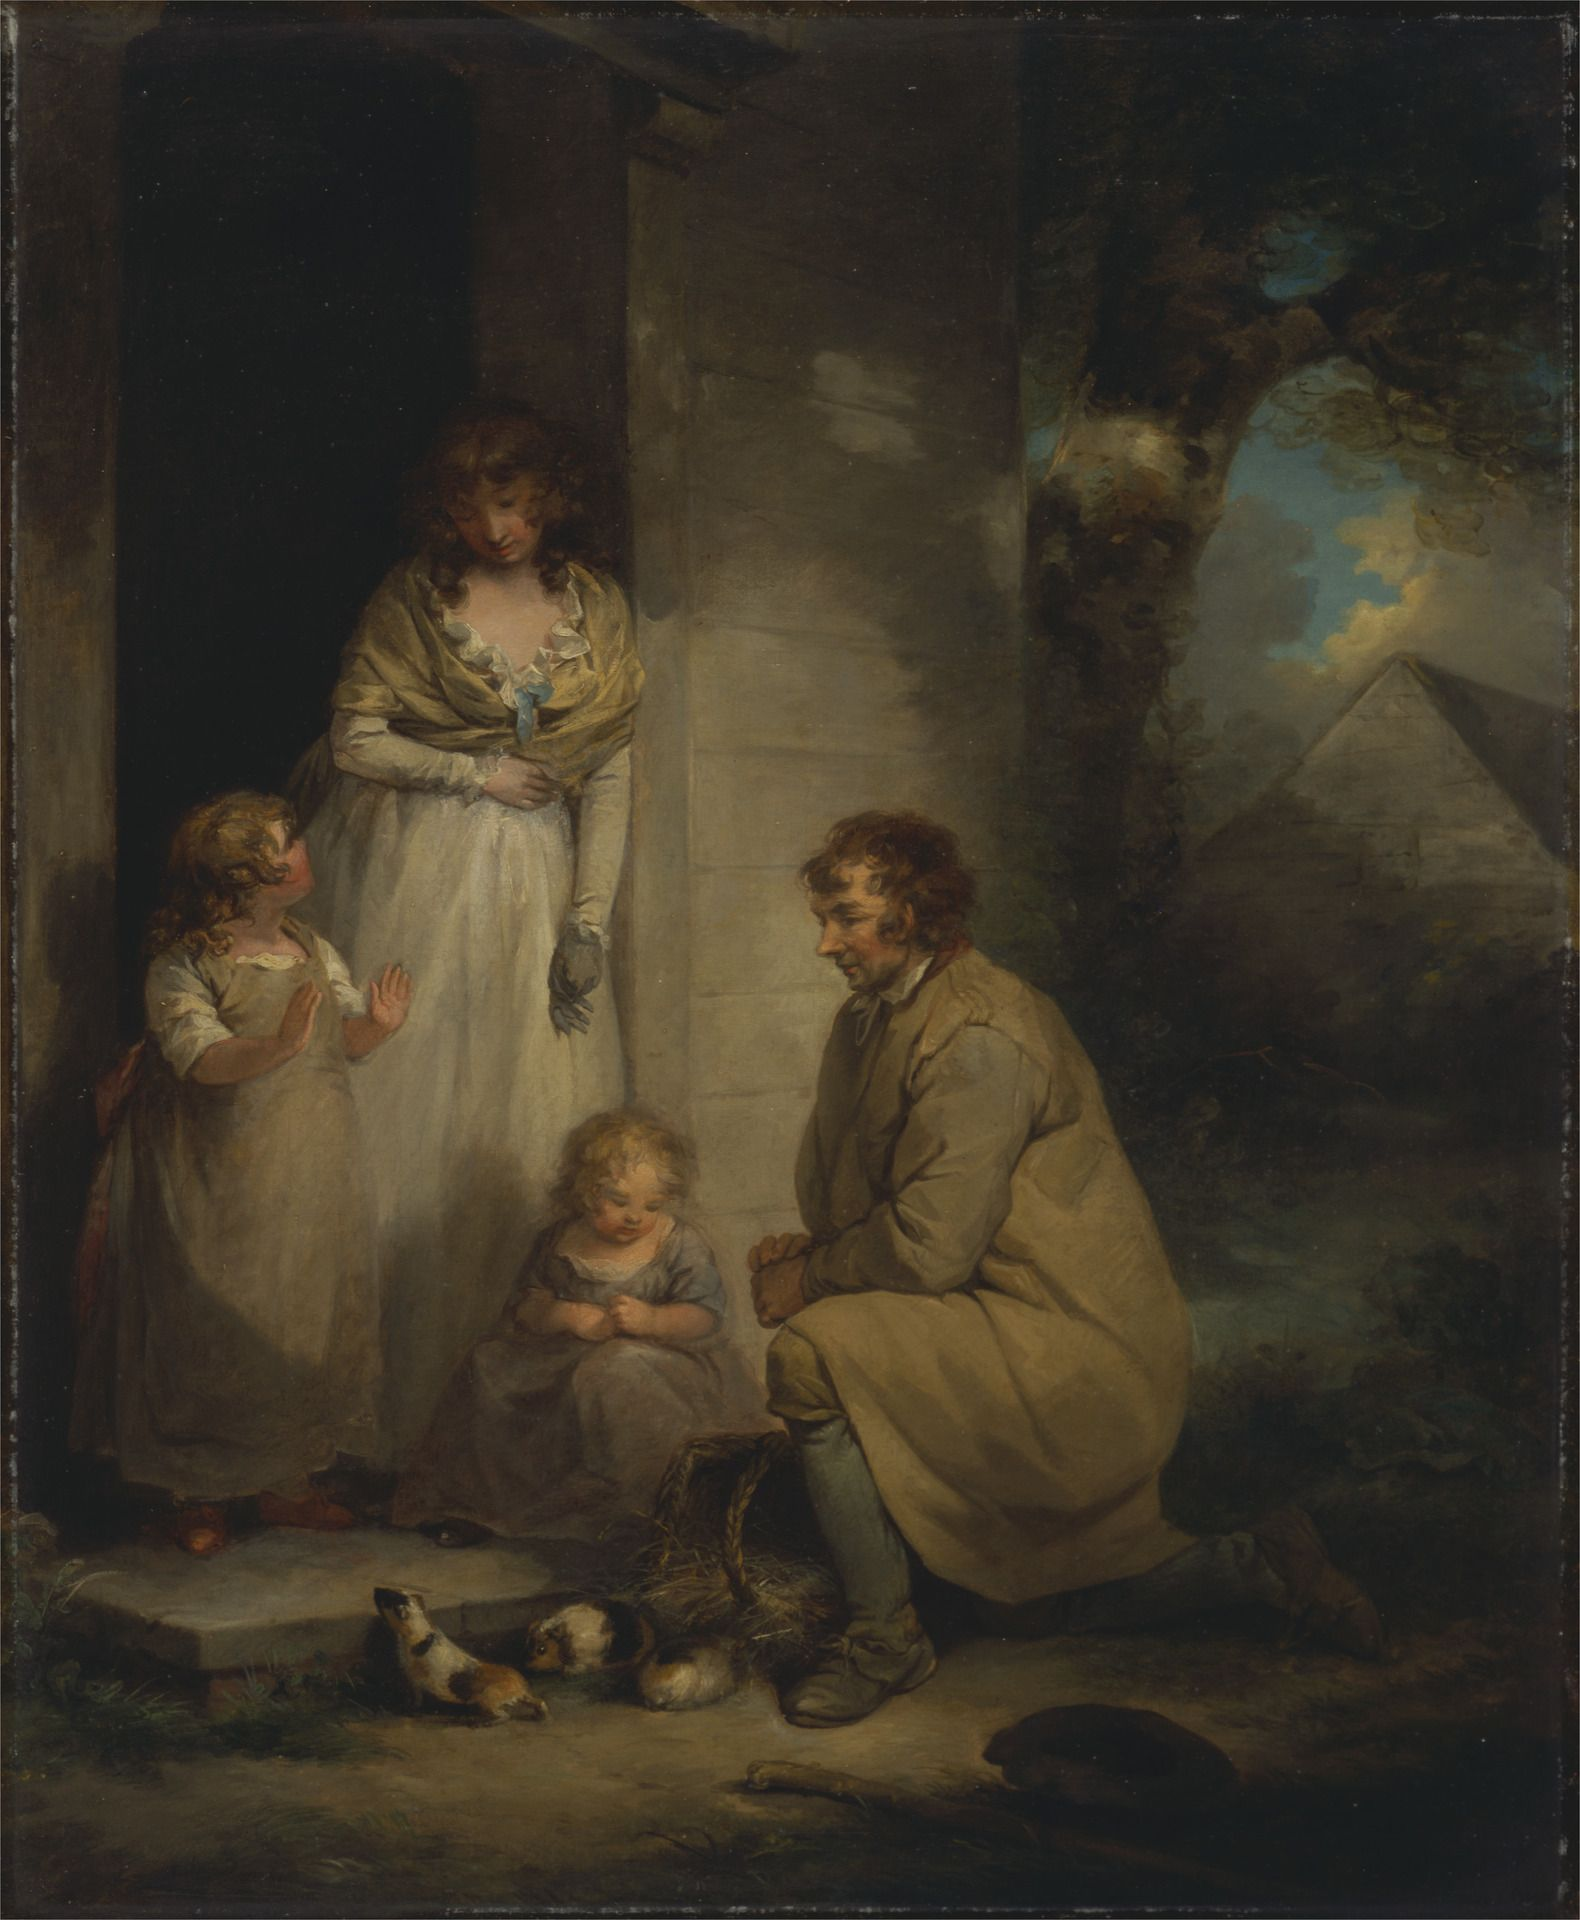 Selling Guinea Pigs | George Morland | Oil Painting